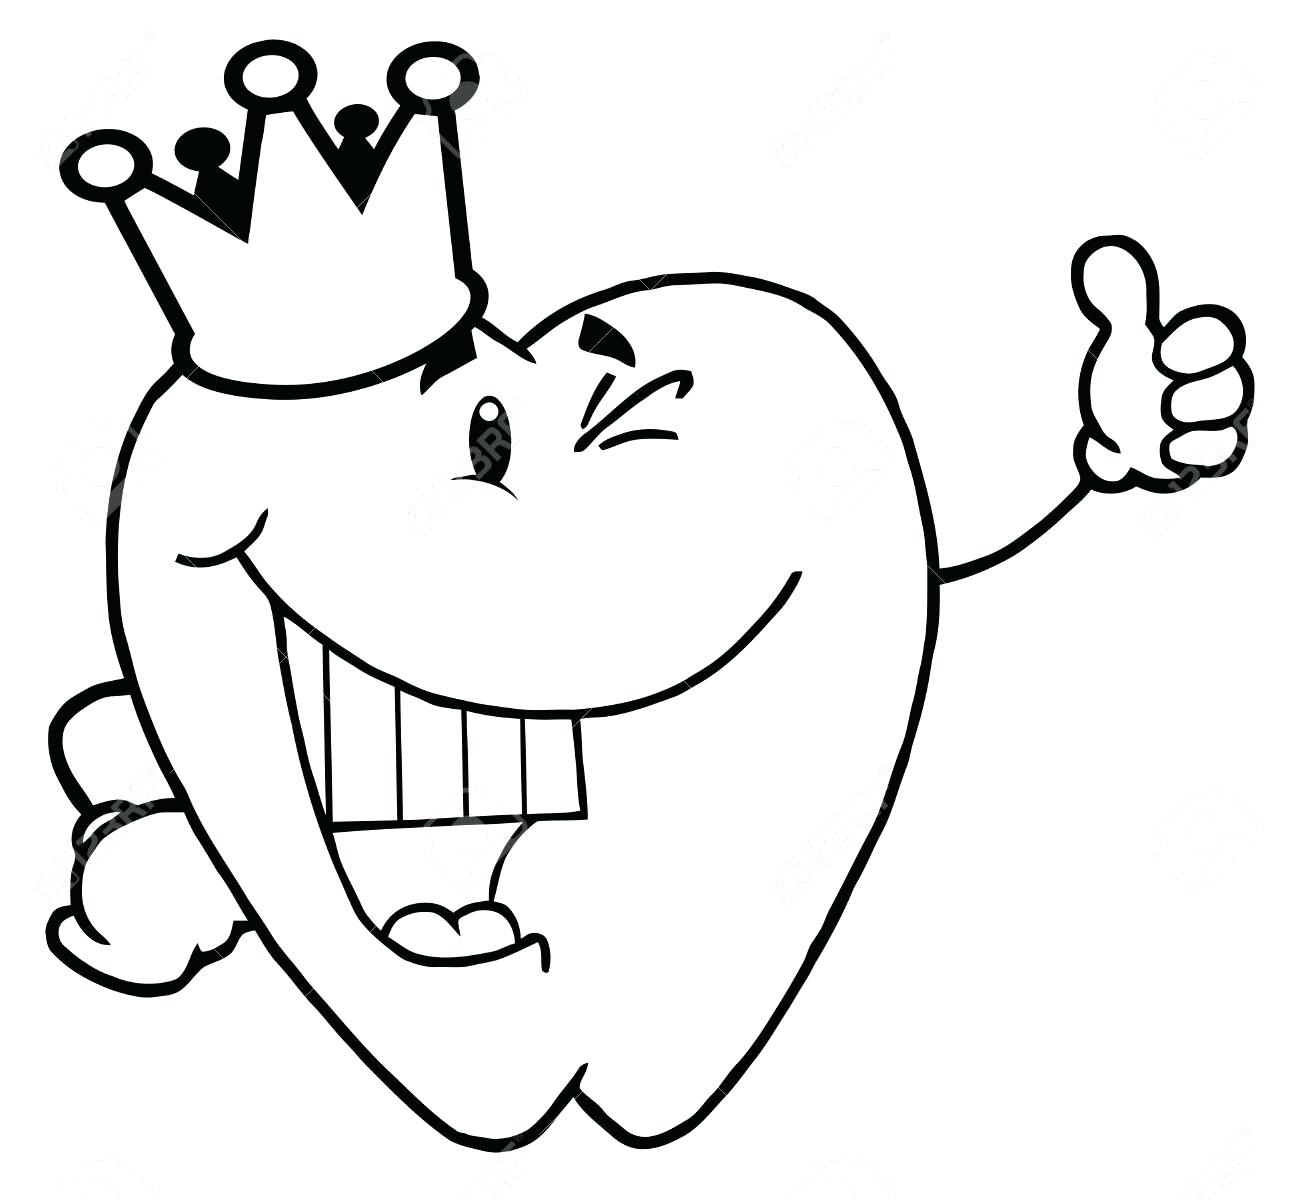 Coloring Pages Tooth Dental Health For Preschoolers To Print Of Inspirational